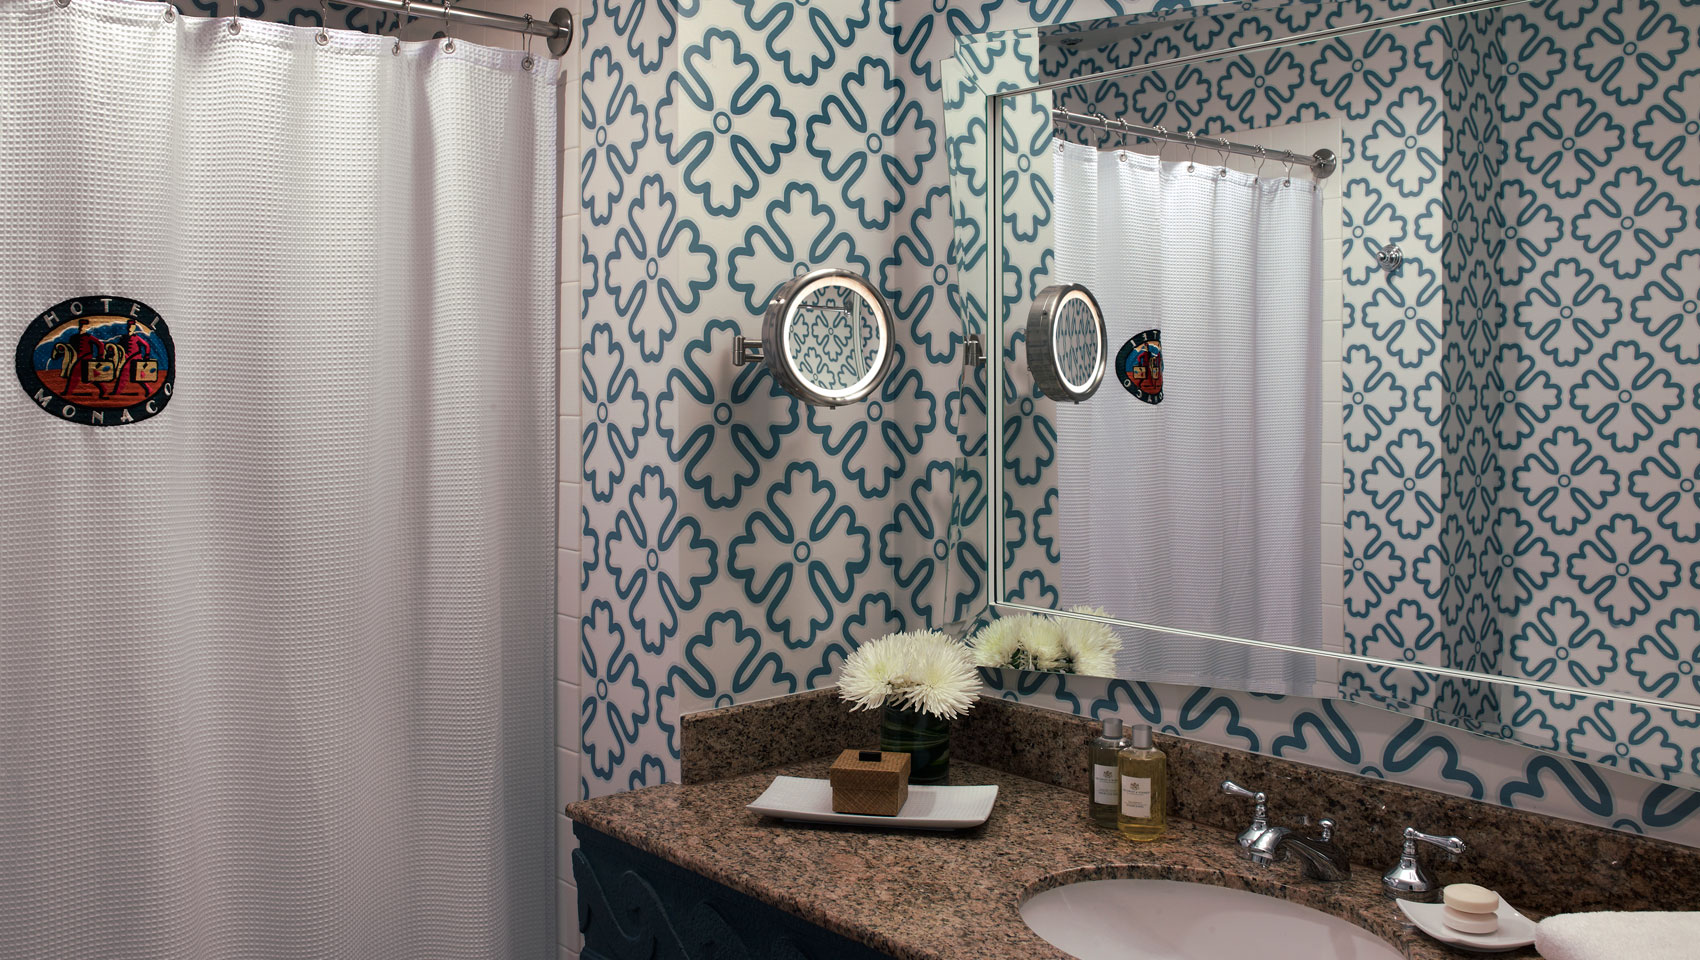 A well-lit vanity mirror surrounded by a brightly patterned wallpaper in the bathroom with luxe amenities and flowers in a vase.